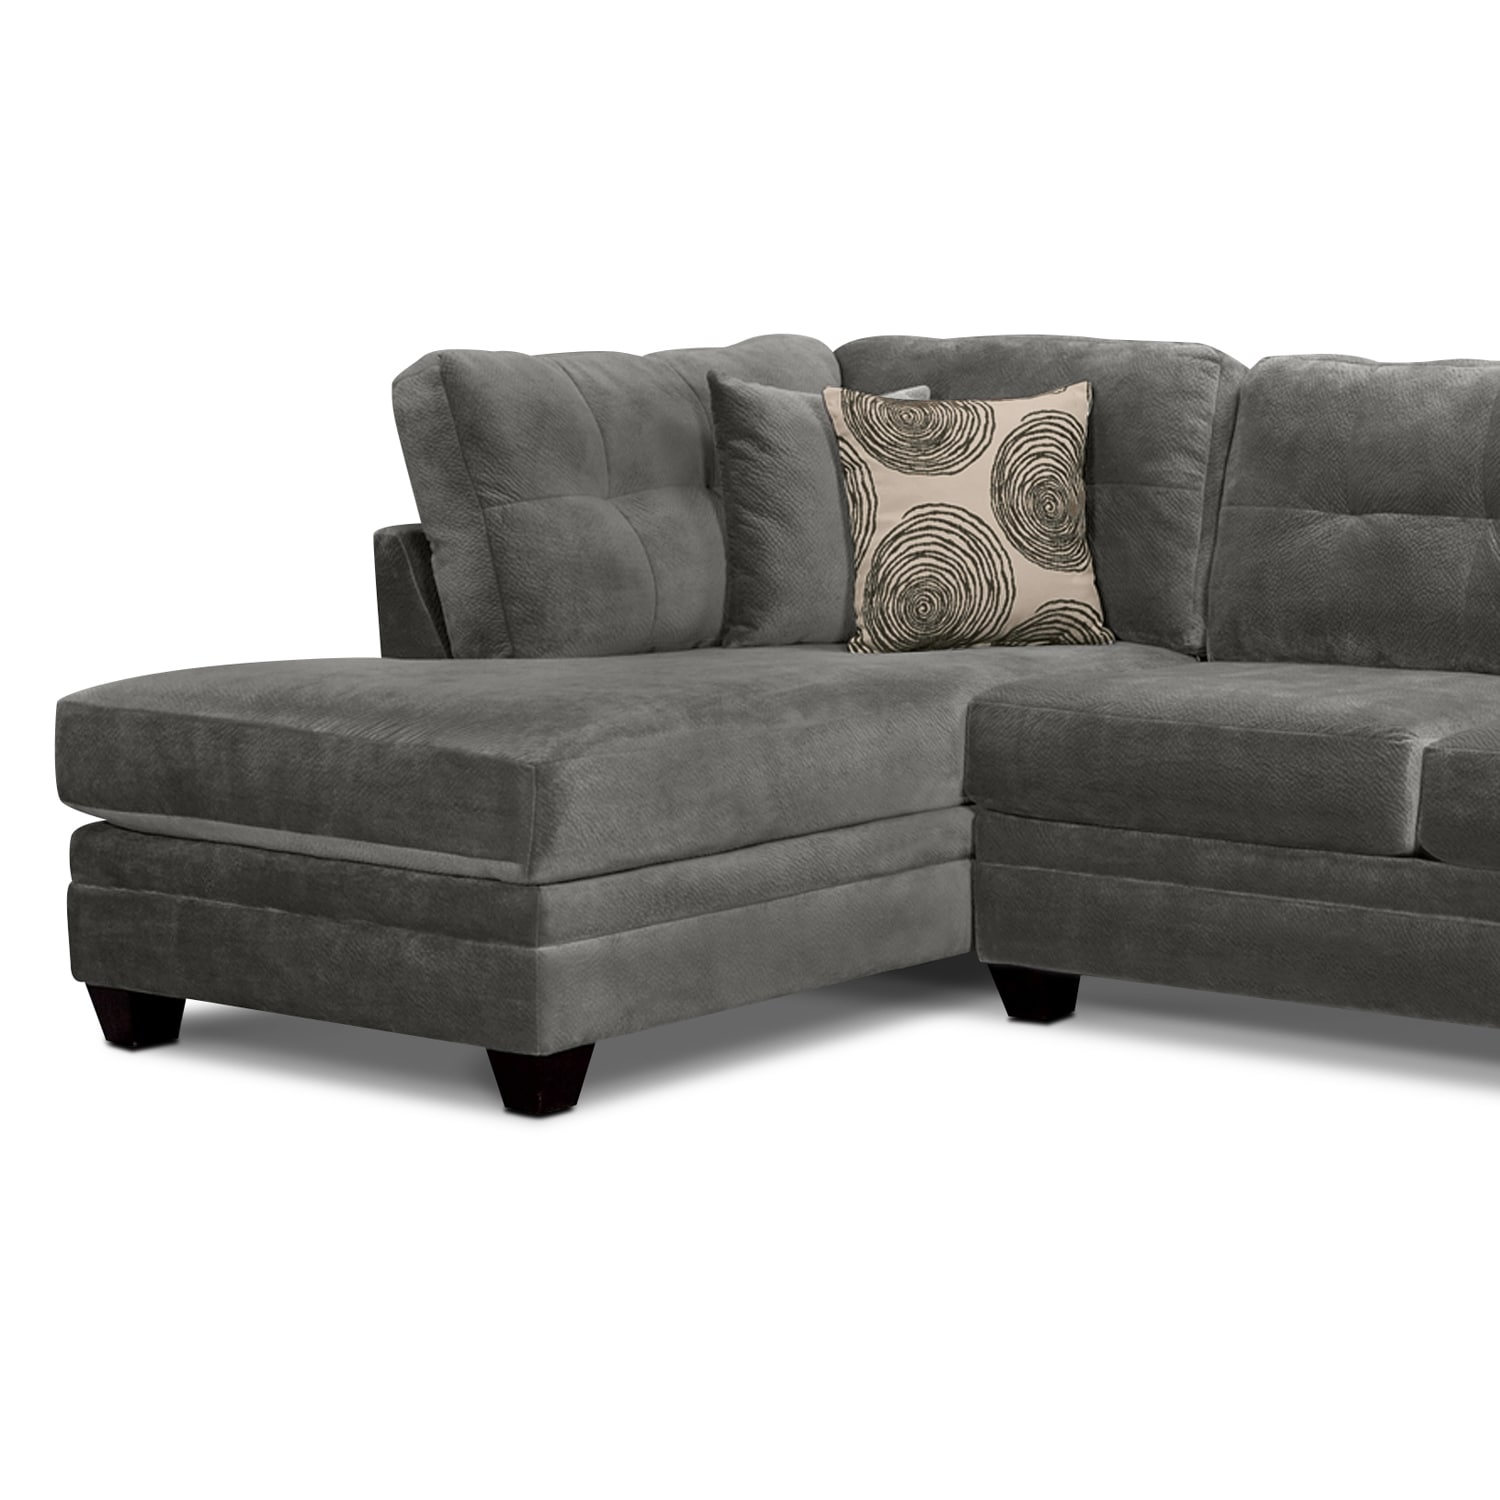 sofas b where chaise to with sofa gray buy couch a grey modern